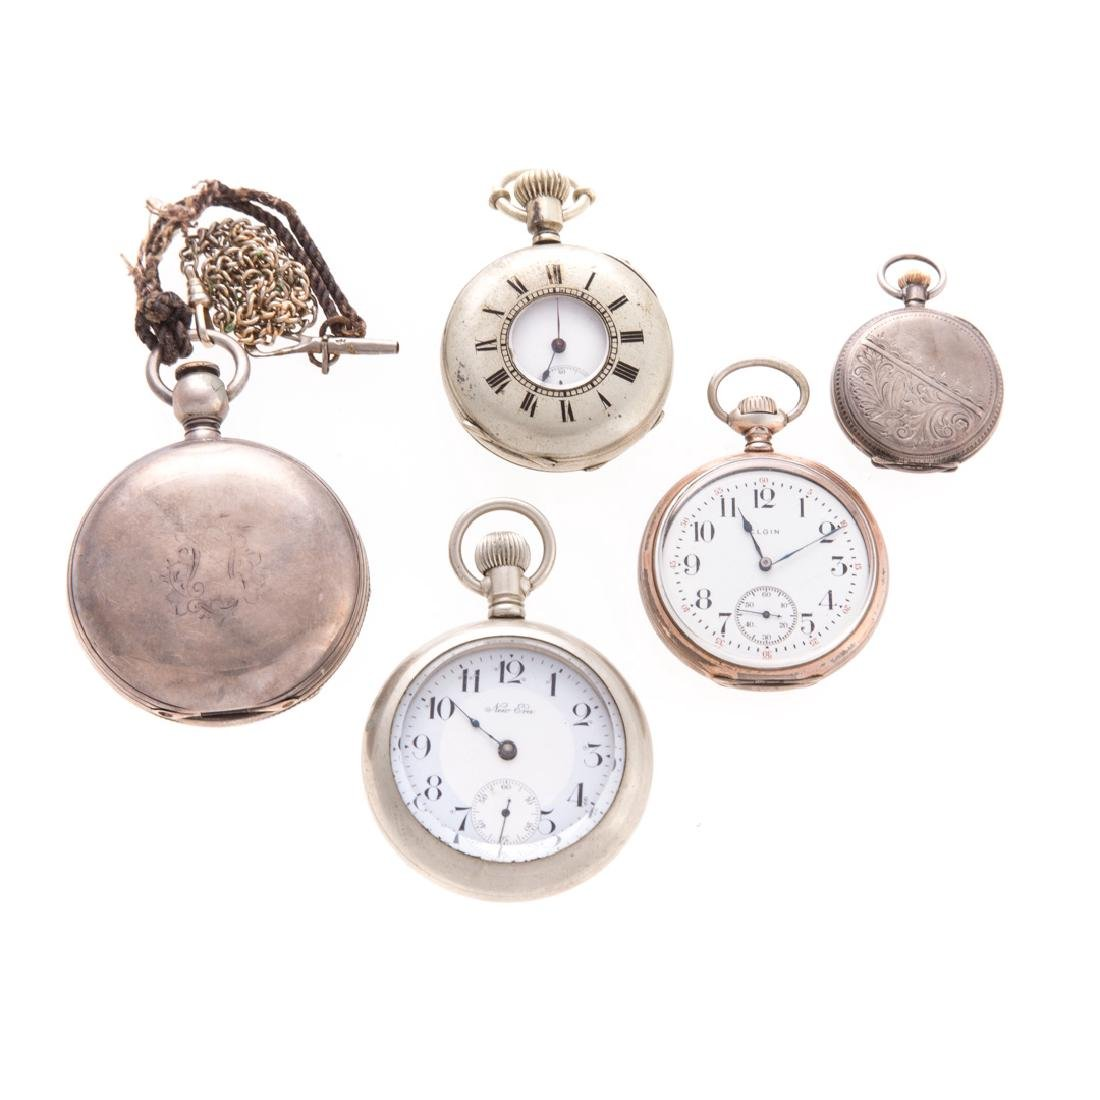 A Collection of Railroad & Pocket Watches